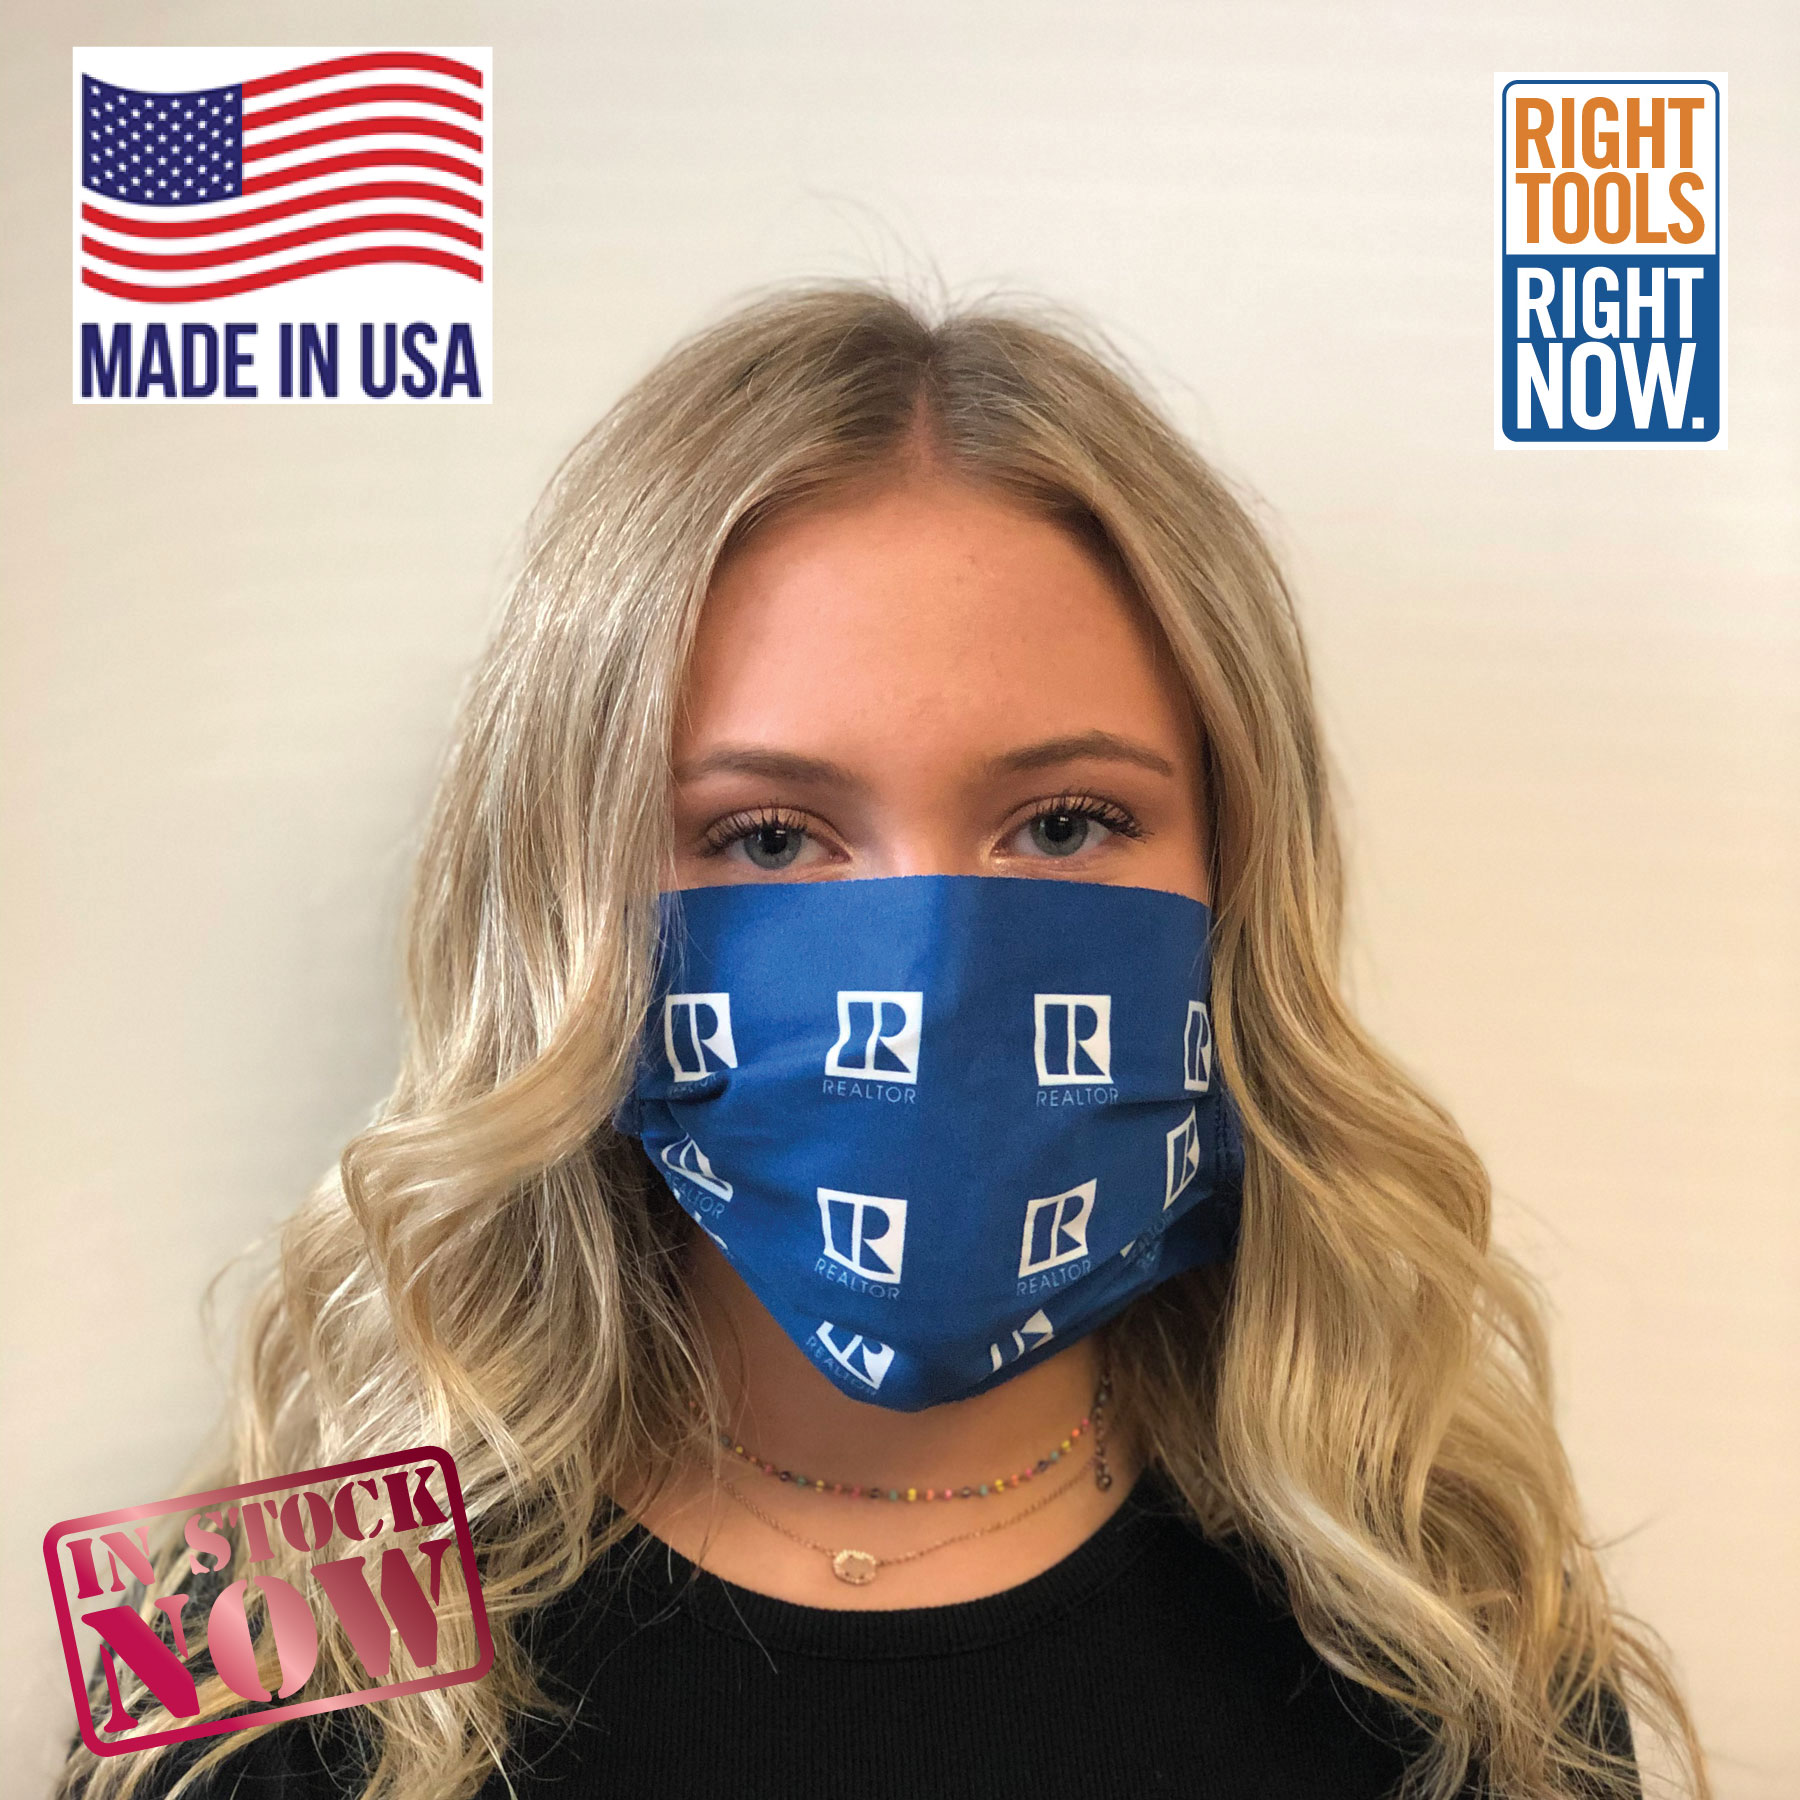 Pre-Order: Microfiber Face Mask with the REALTOR® Logo Faces,Masks,Shields,COVID,COVID-19,SARS,Virus,Viruses,Coughs,Safety